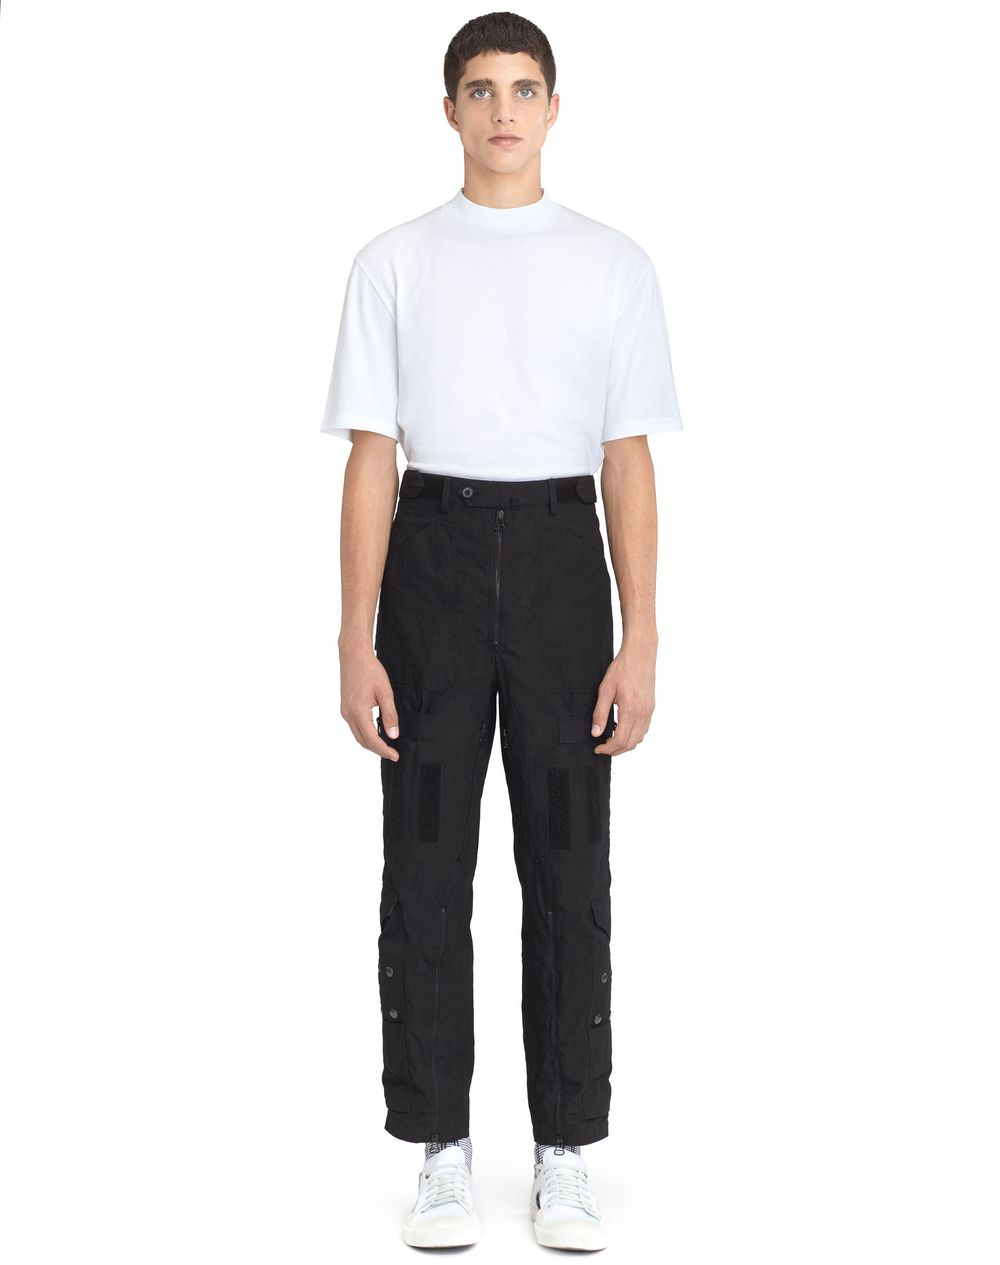 WIDE MULTI-POCKET TROUSERS - Lanvin